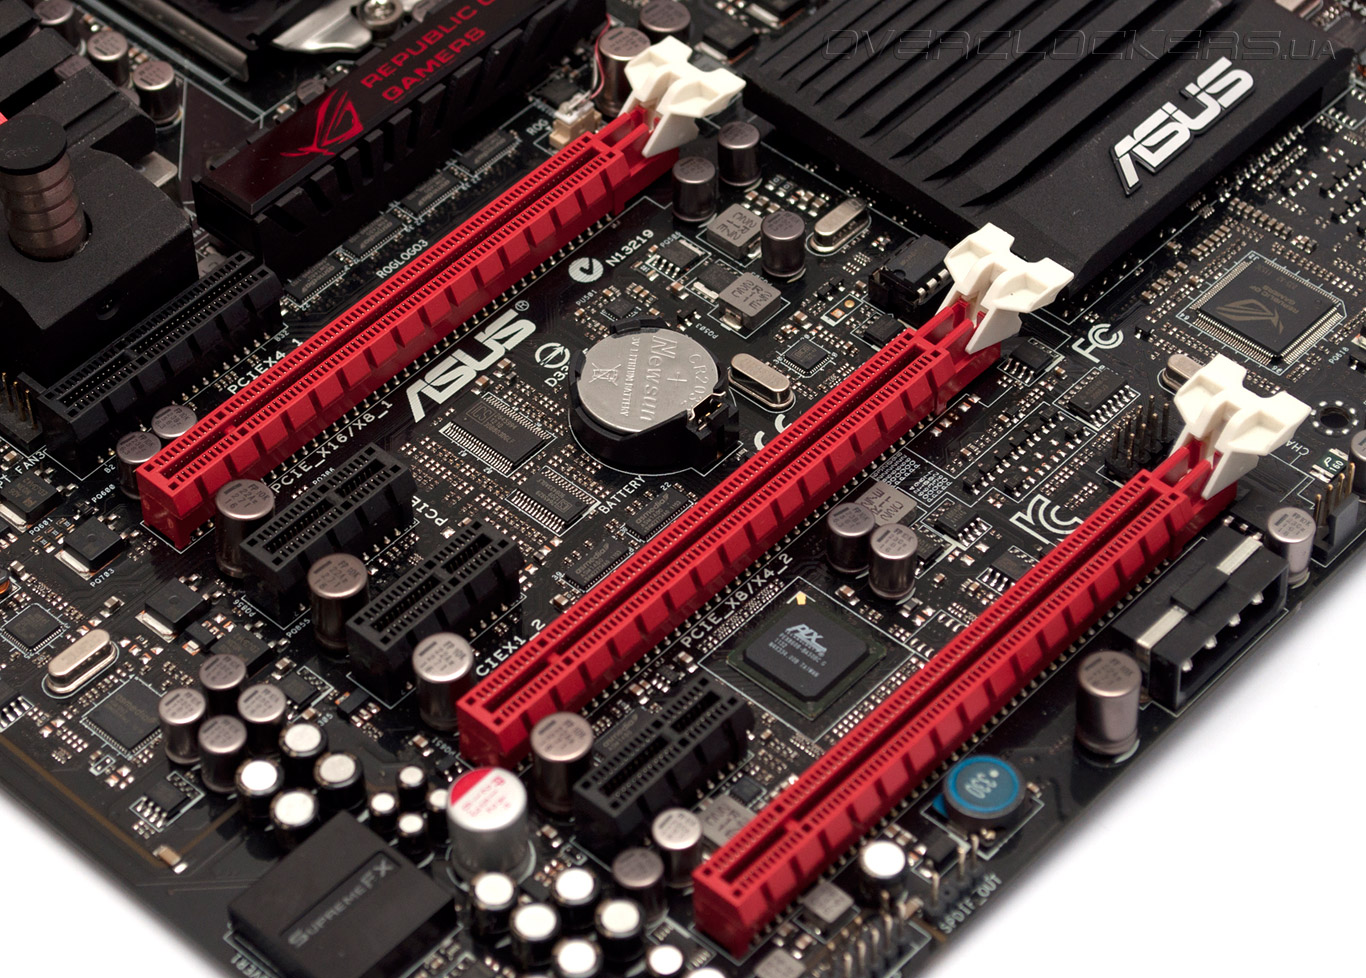 ASUS MAXIMUS V FORMULA/ThunderFX Broadcom Bluetooth Windows 7